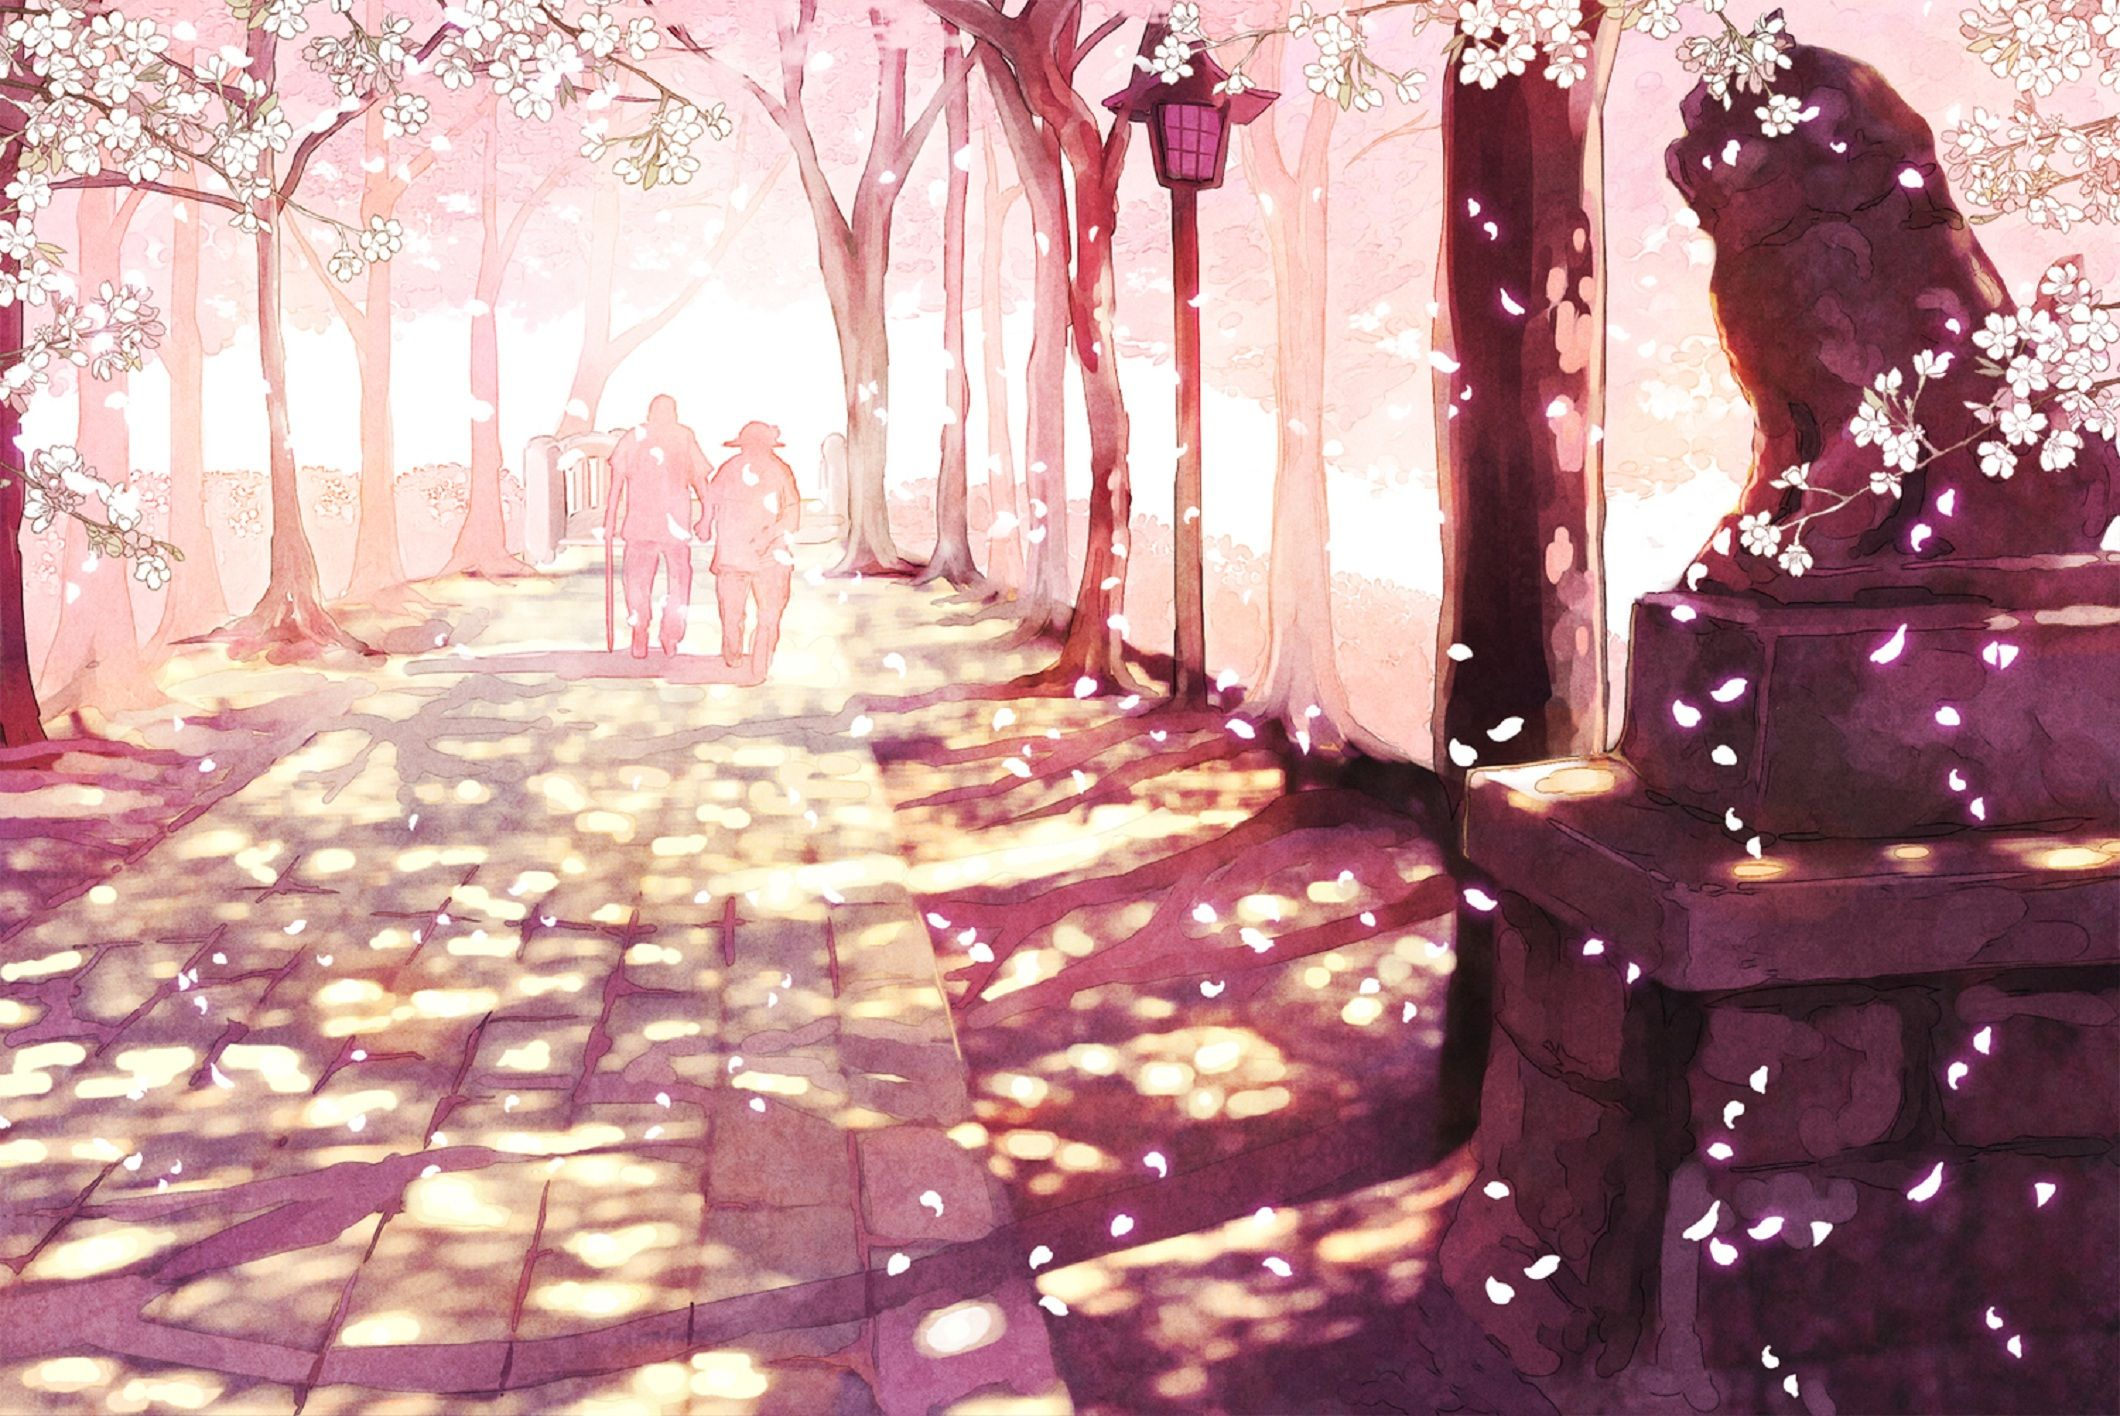 Sakura Anime Scenery Wallpaper Desktop 52782 Seni Animasi